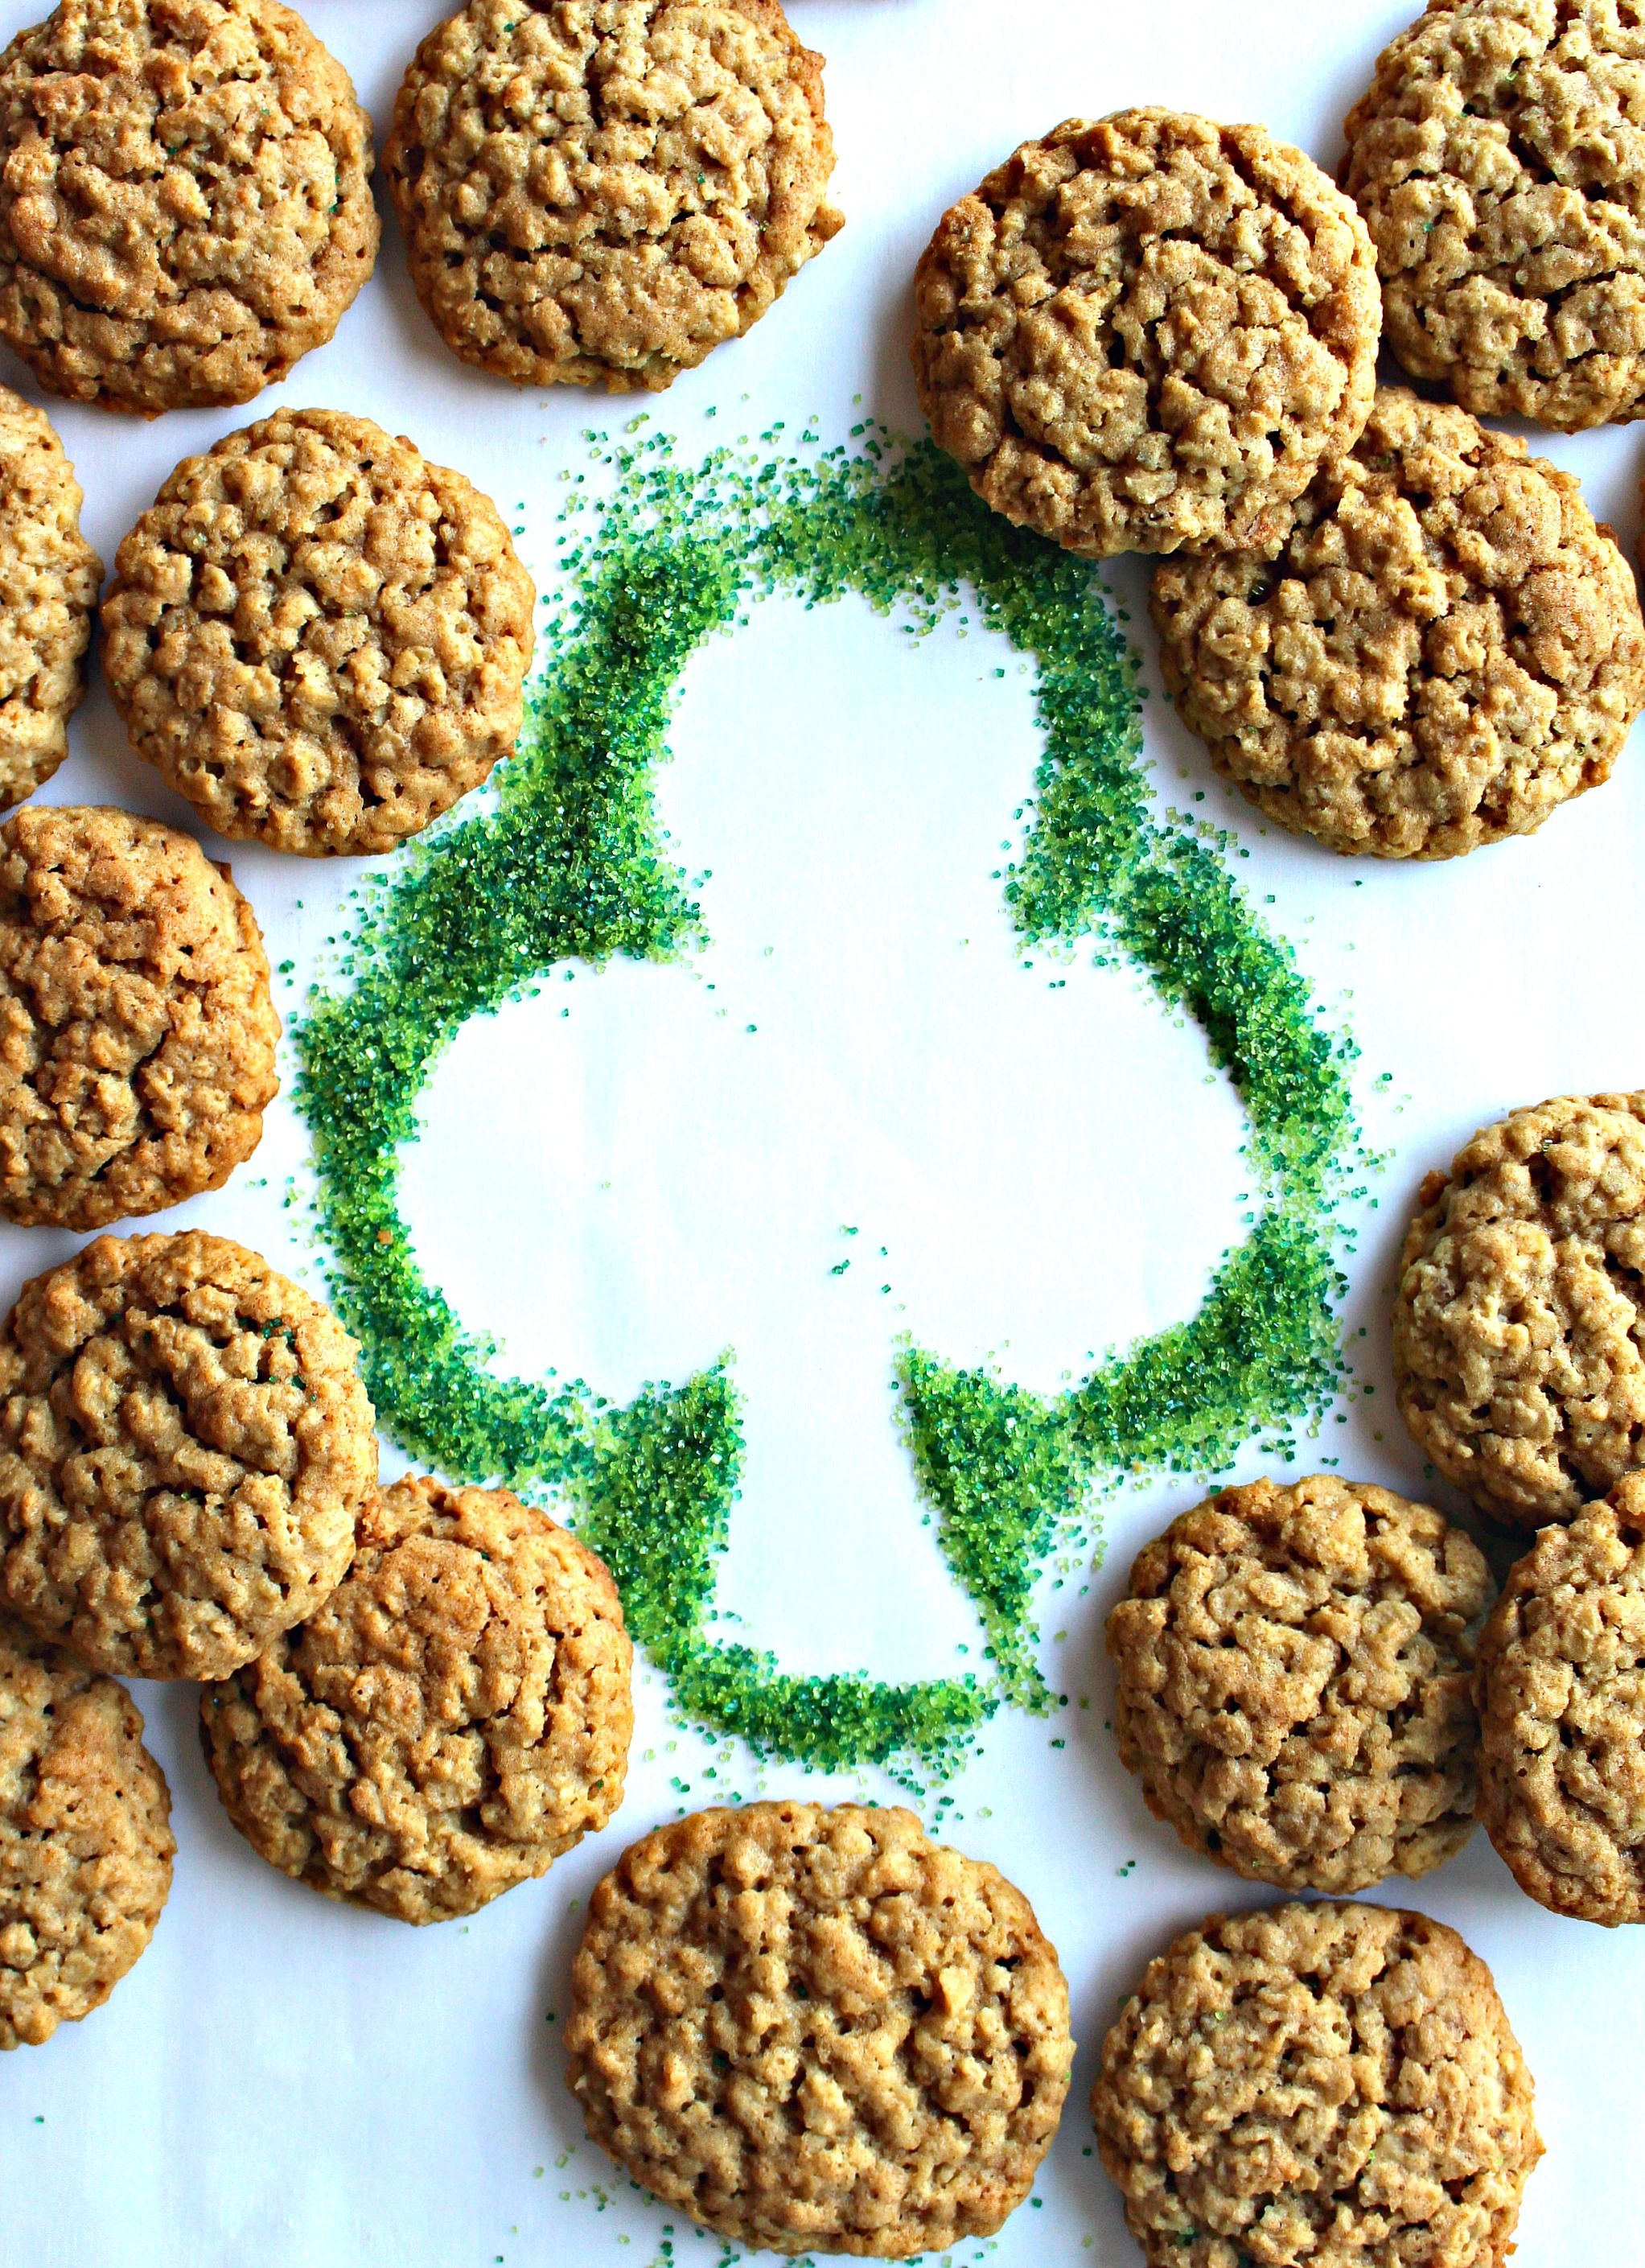 Unbelievably delicious Irish Oatmeal Cookies stand out from the rest! Chewy, nutty Irish oatmeal. Creamy, rich Irish butter. Warm toffee flavor. The BEST!